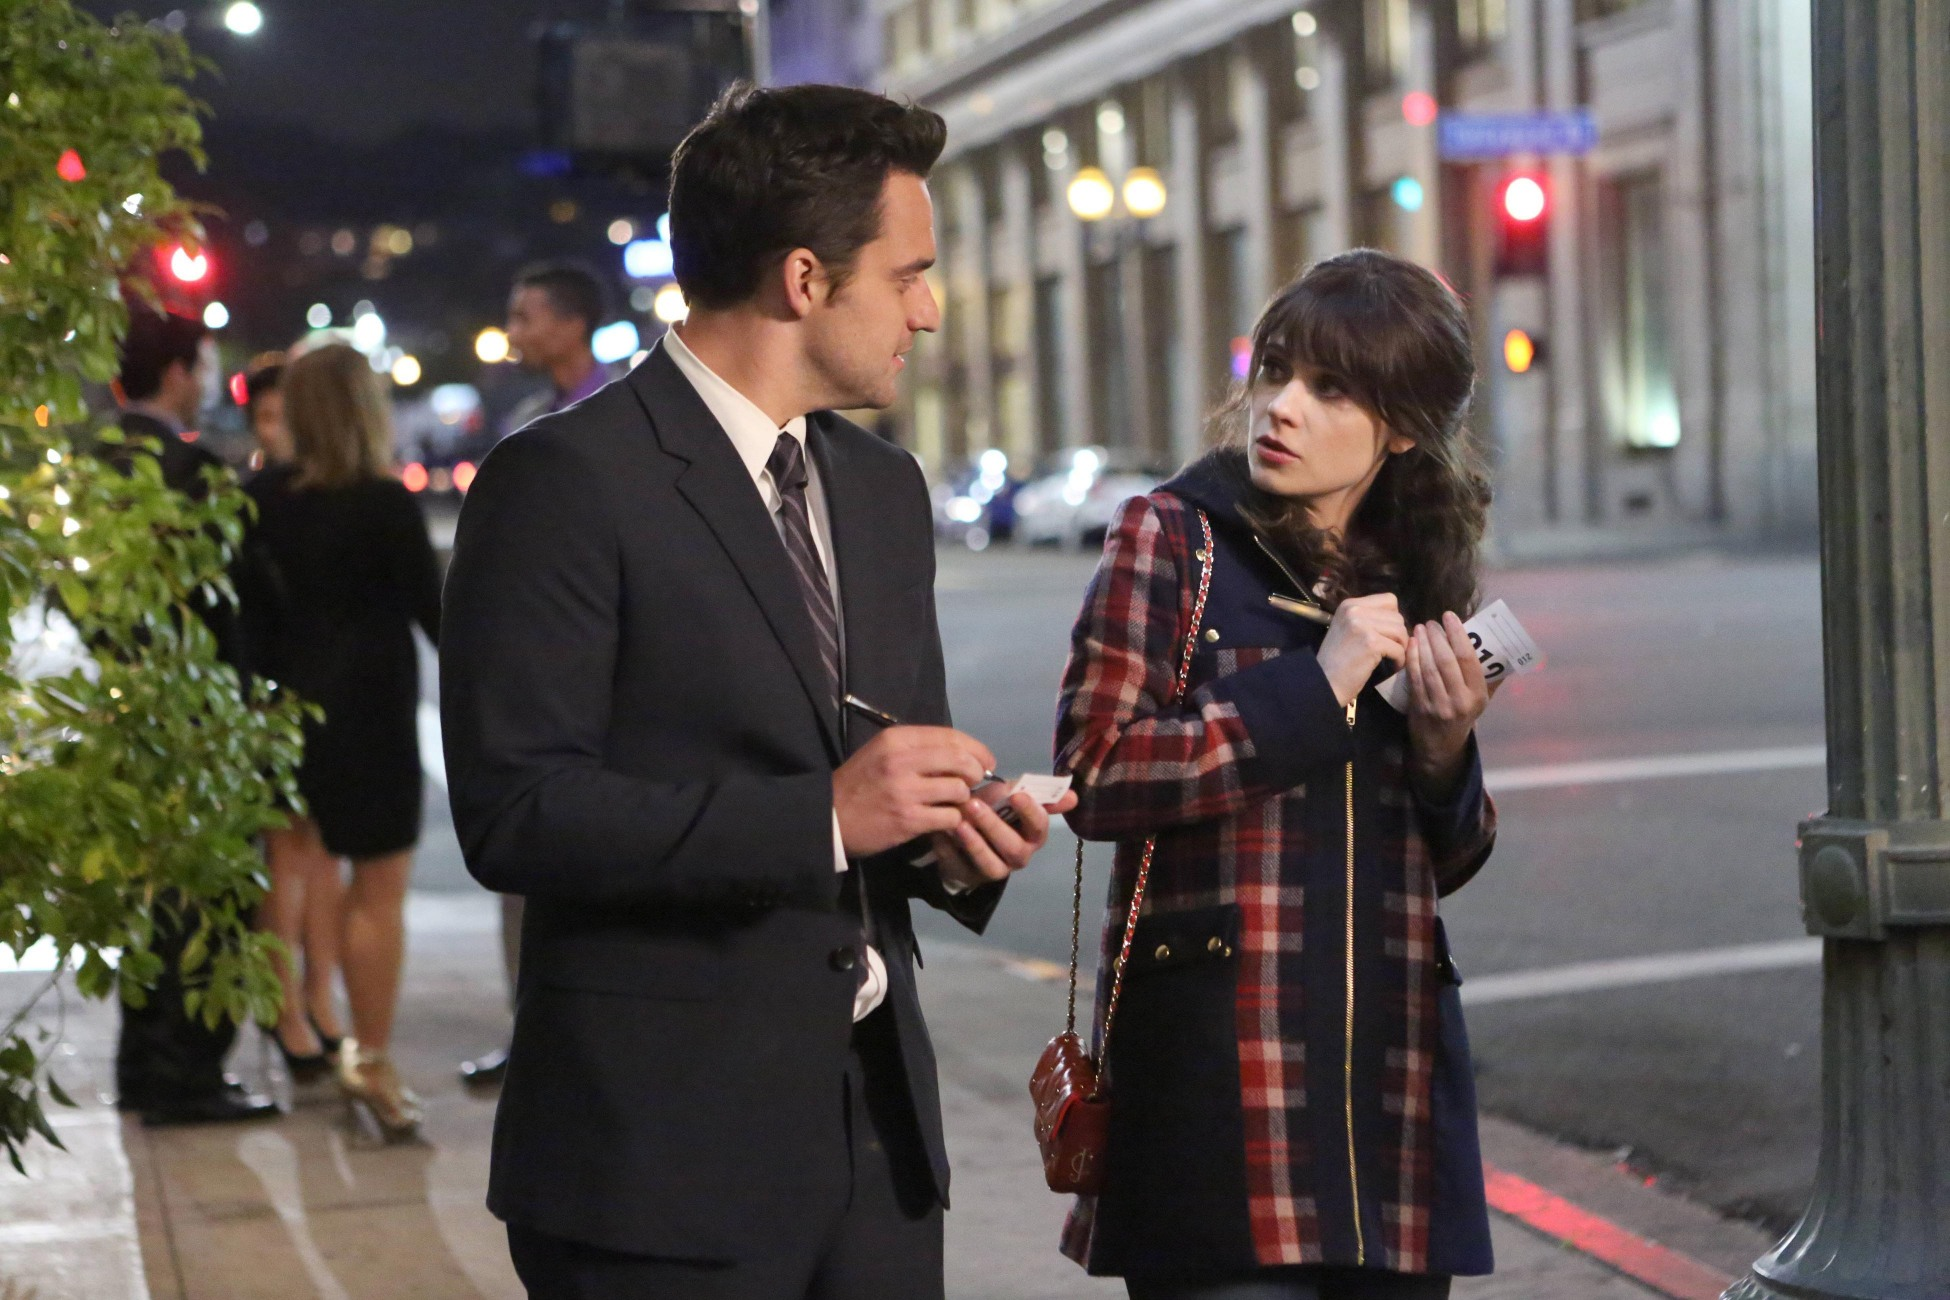 """NEW GIRL:  Jess (Zooey Deschanel, R) and Nick (Jake Johnson, L) try to define their relationship in the """"First Date"""" episode of NEW GIRL airing on a special night, Thursday, April 4 (9:00-9:30 PM ET/PT) on FOX.  ©2013 Fox Broadcasting Co.  Cr:  Adam Taylor/FOX"""